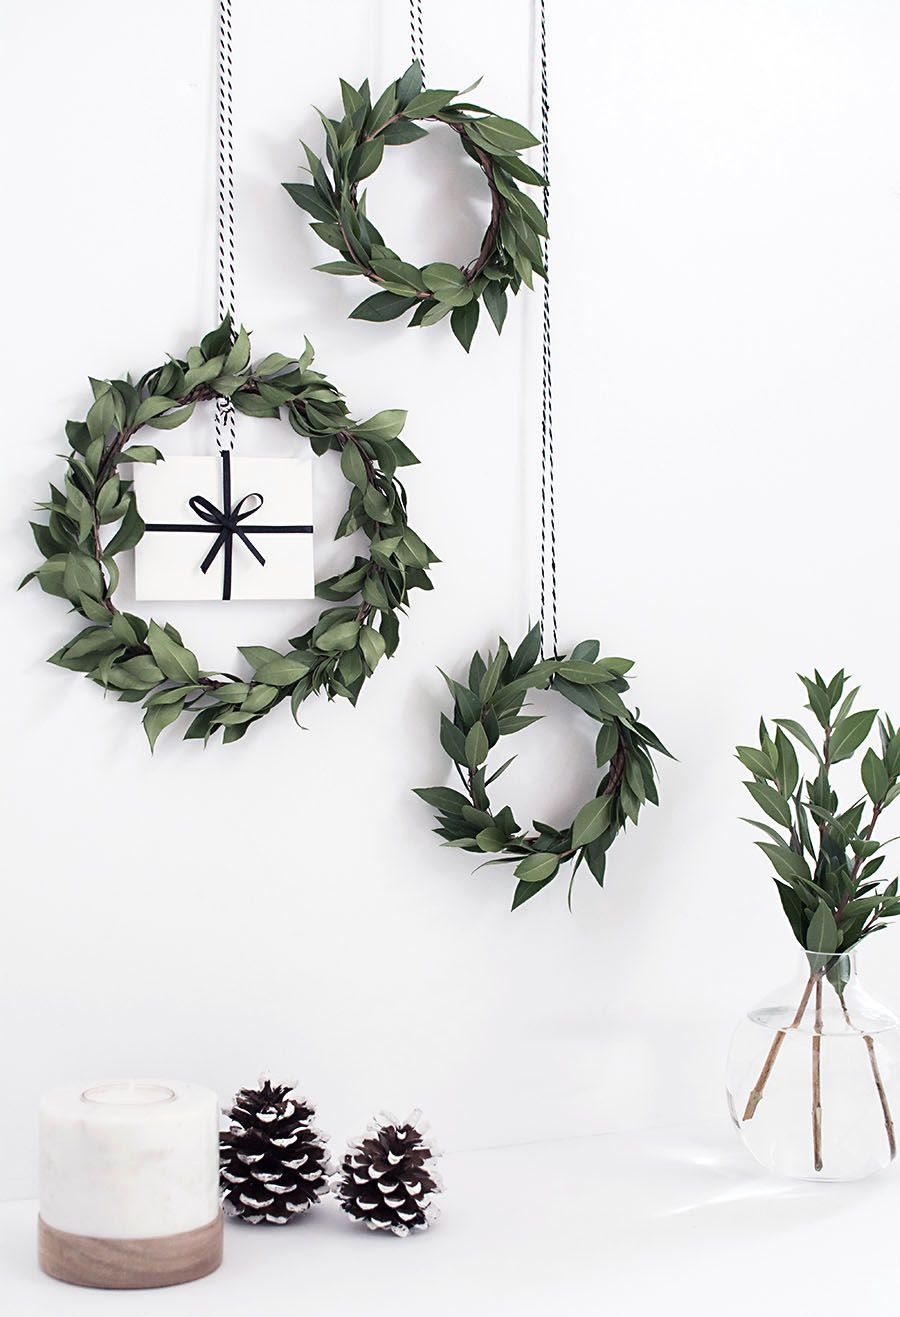 DIY Gift Card Wreath via homeyohmy #Christmas #ChristmasDecor #ChristmasDIY #DIYDecor